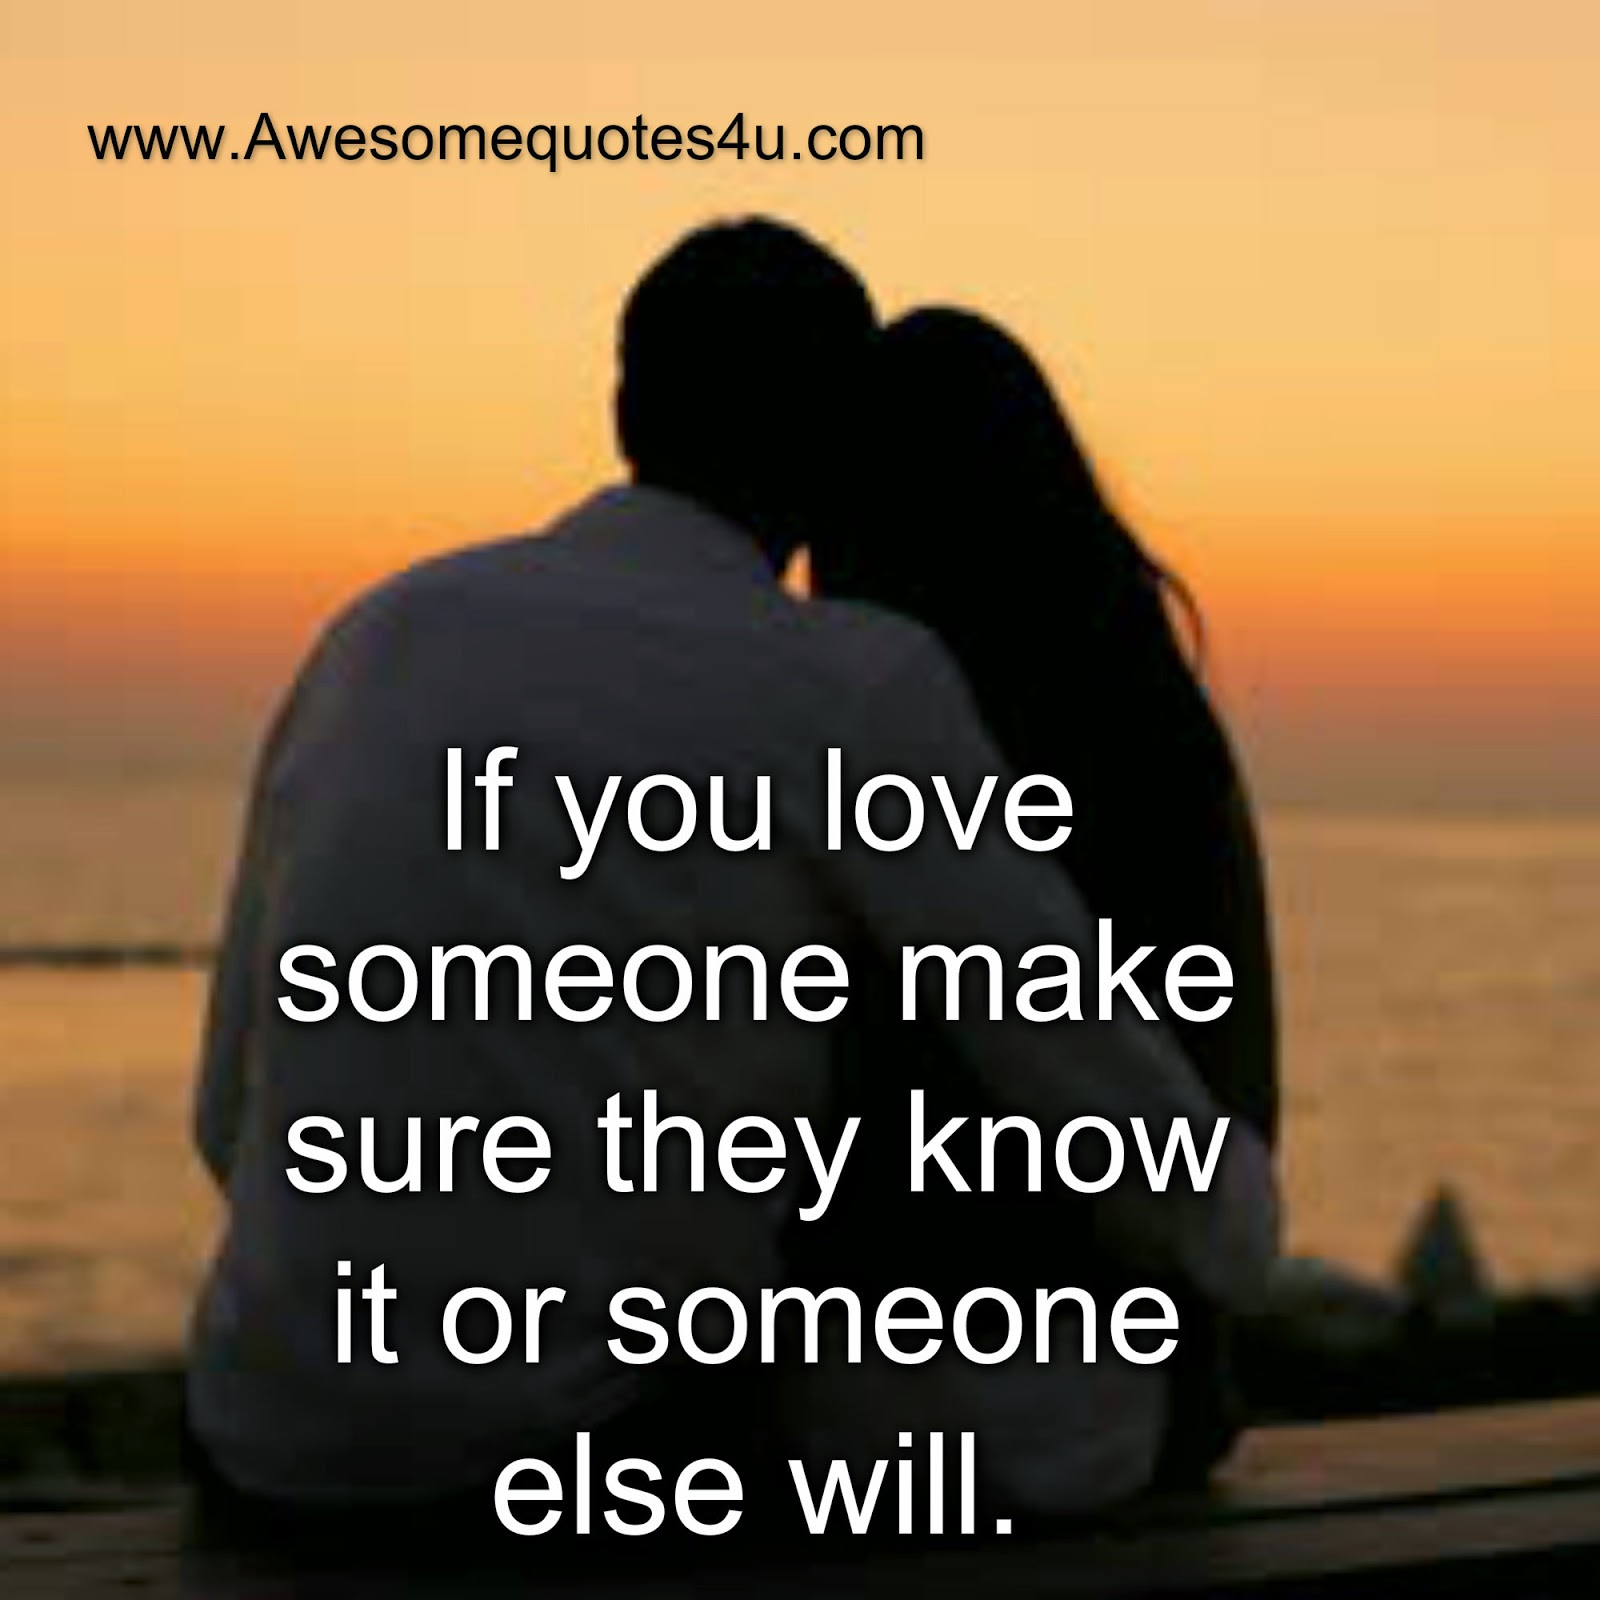 How Do You Know When You Love Someone Quotes: Awesome Quotes: If You Love Someone Make Sure They Know It